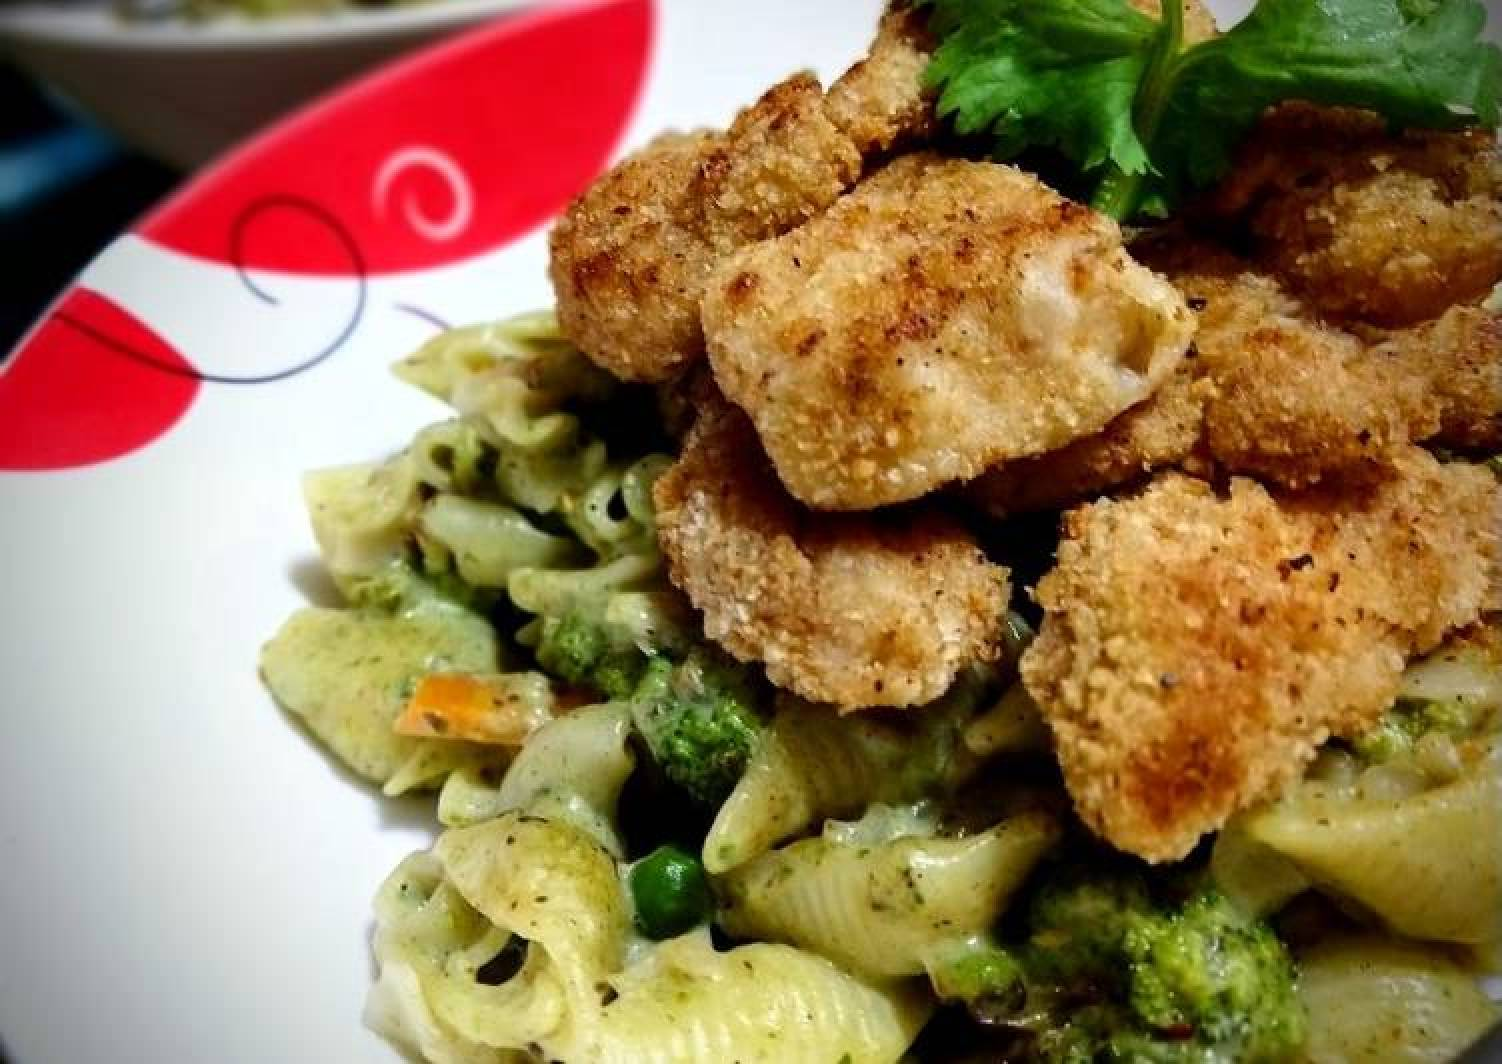 Spinach Pasta with Baked Chicken Nuggets